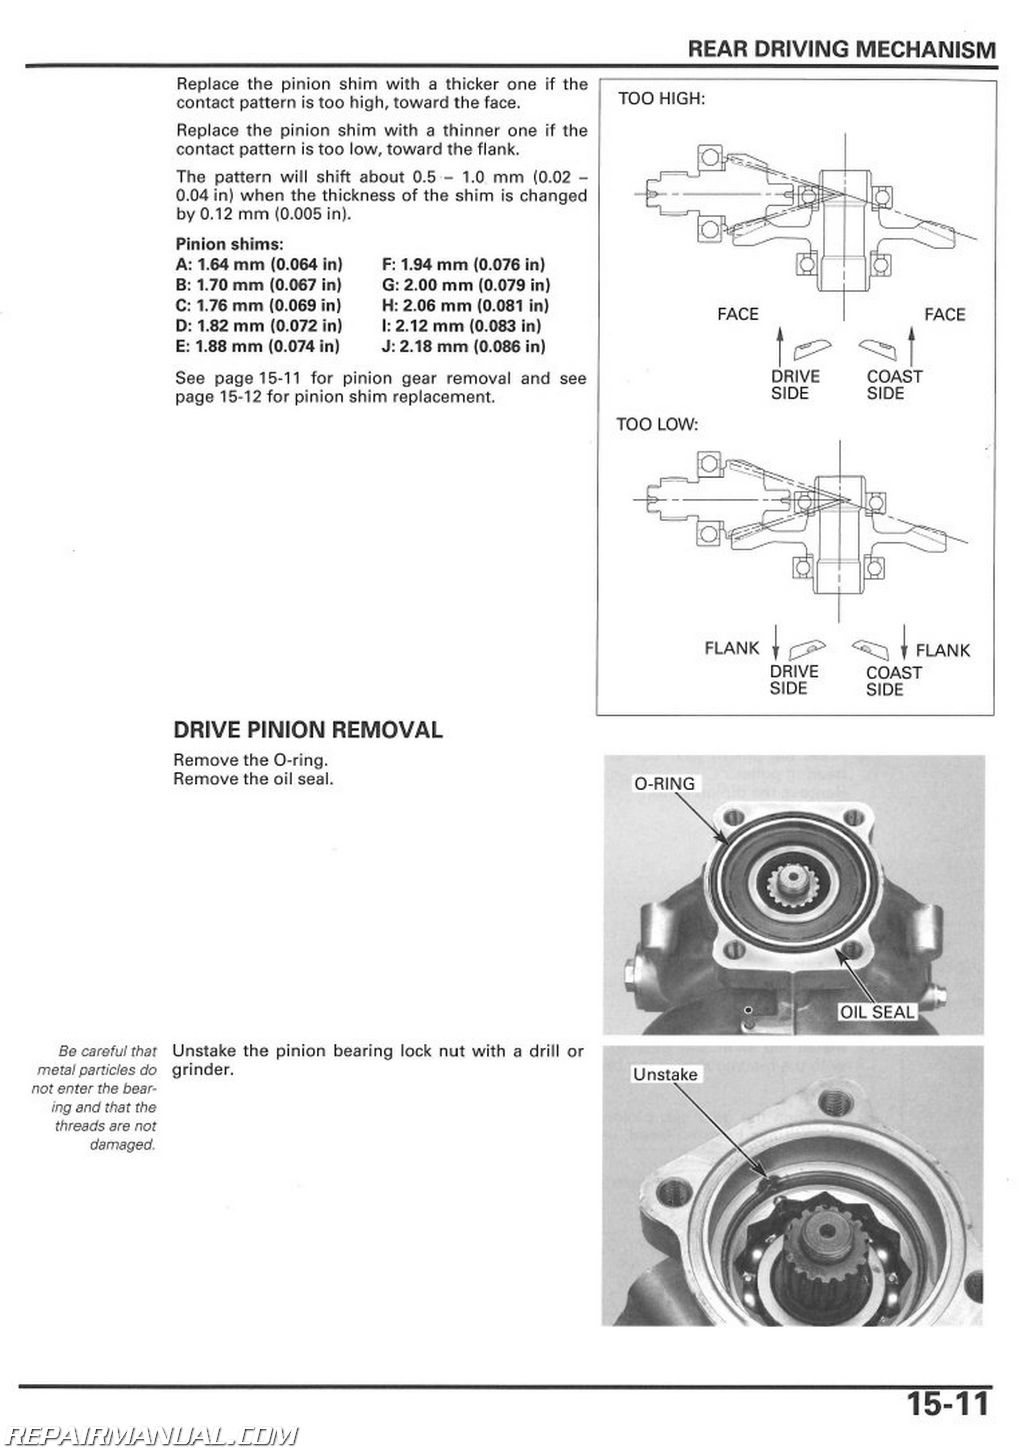 honda wiring diagram for 2003 honda civic hybrid wiring diagram for 2005 honda recon #2